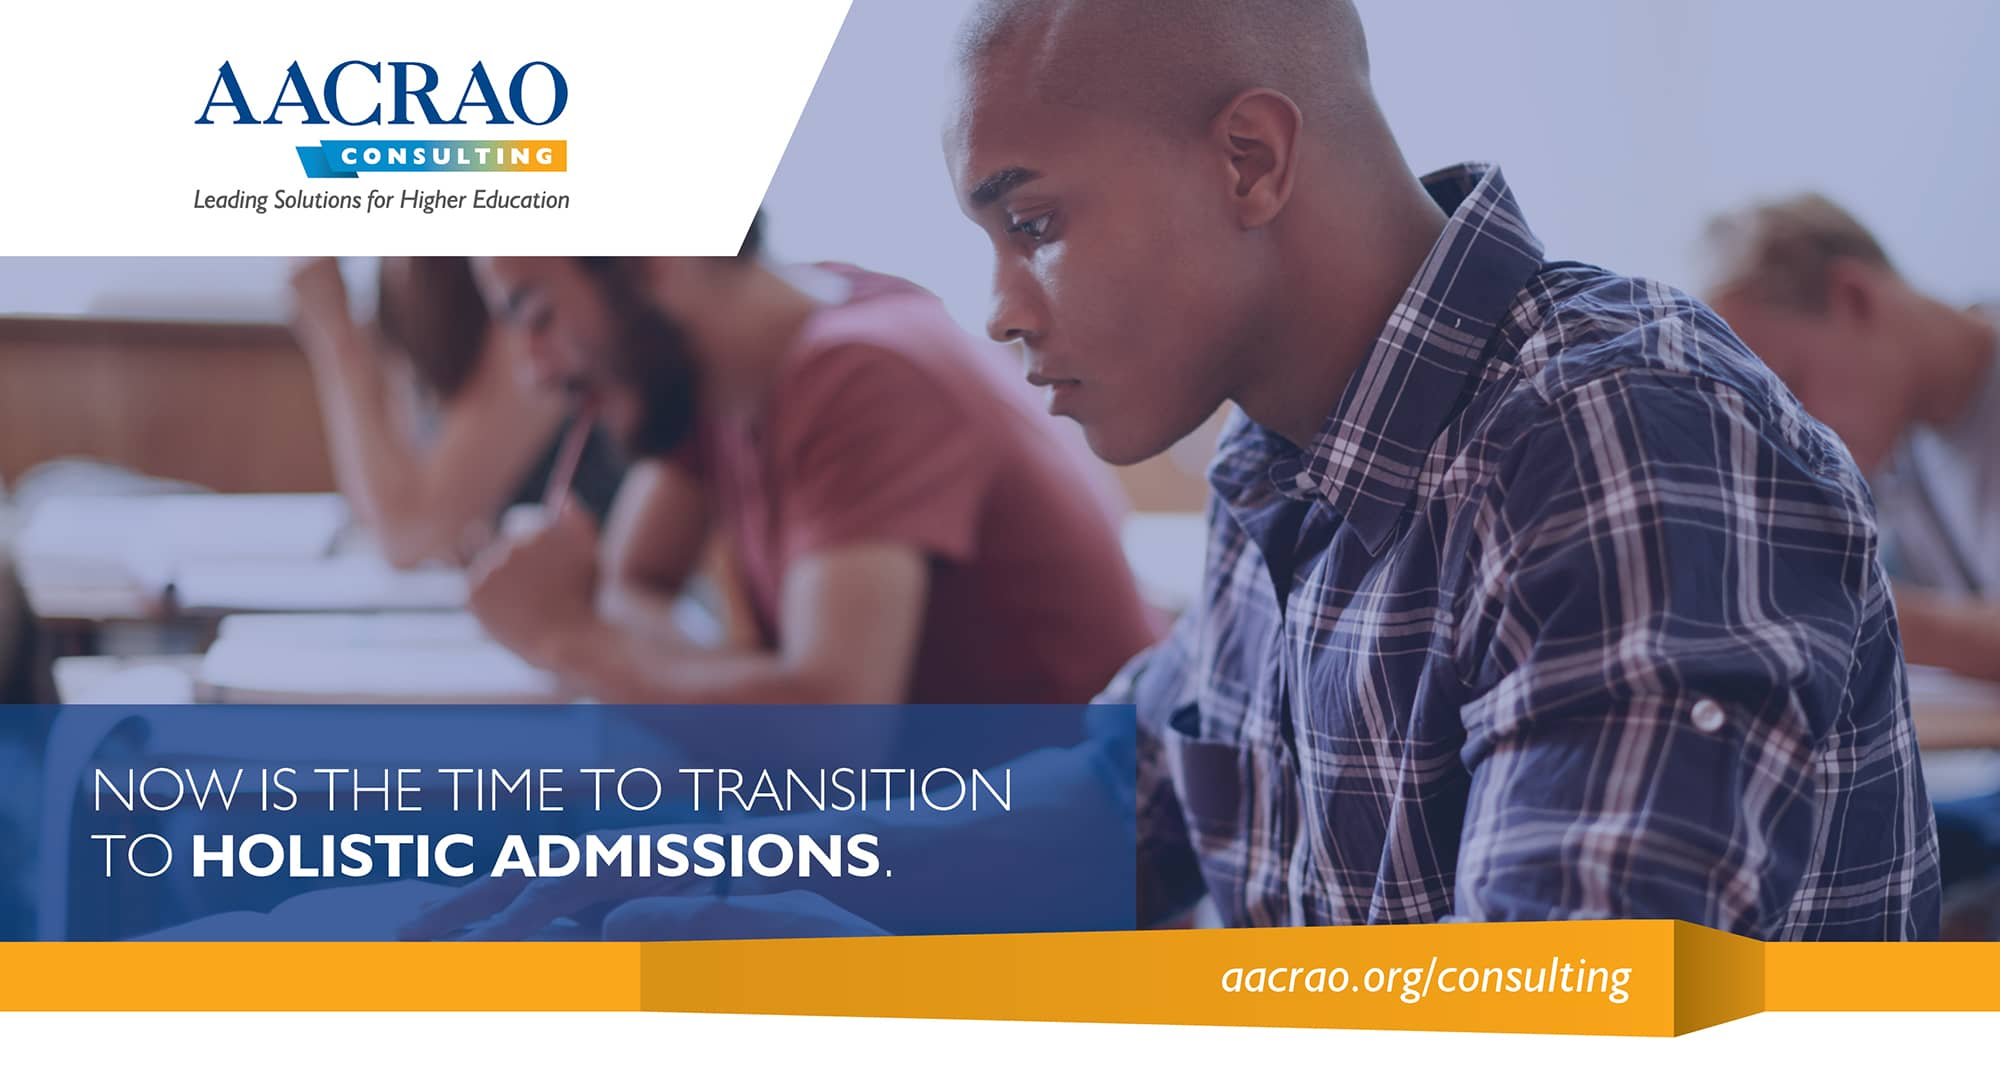 Student in the classroom, with headline: Now is the time to transition to holistic admissions.